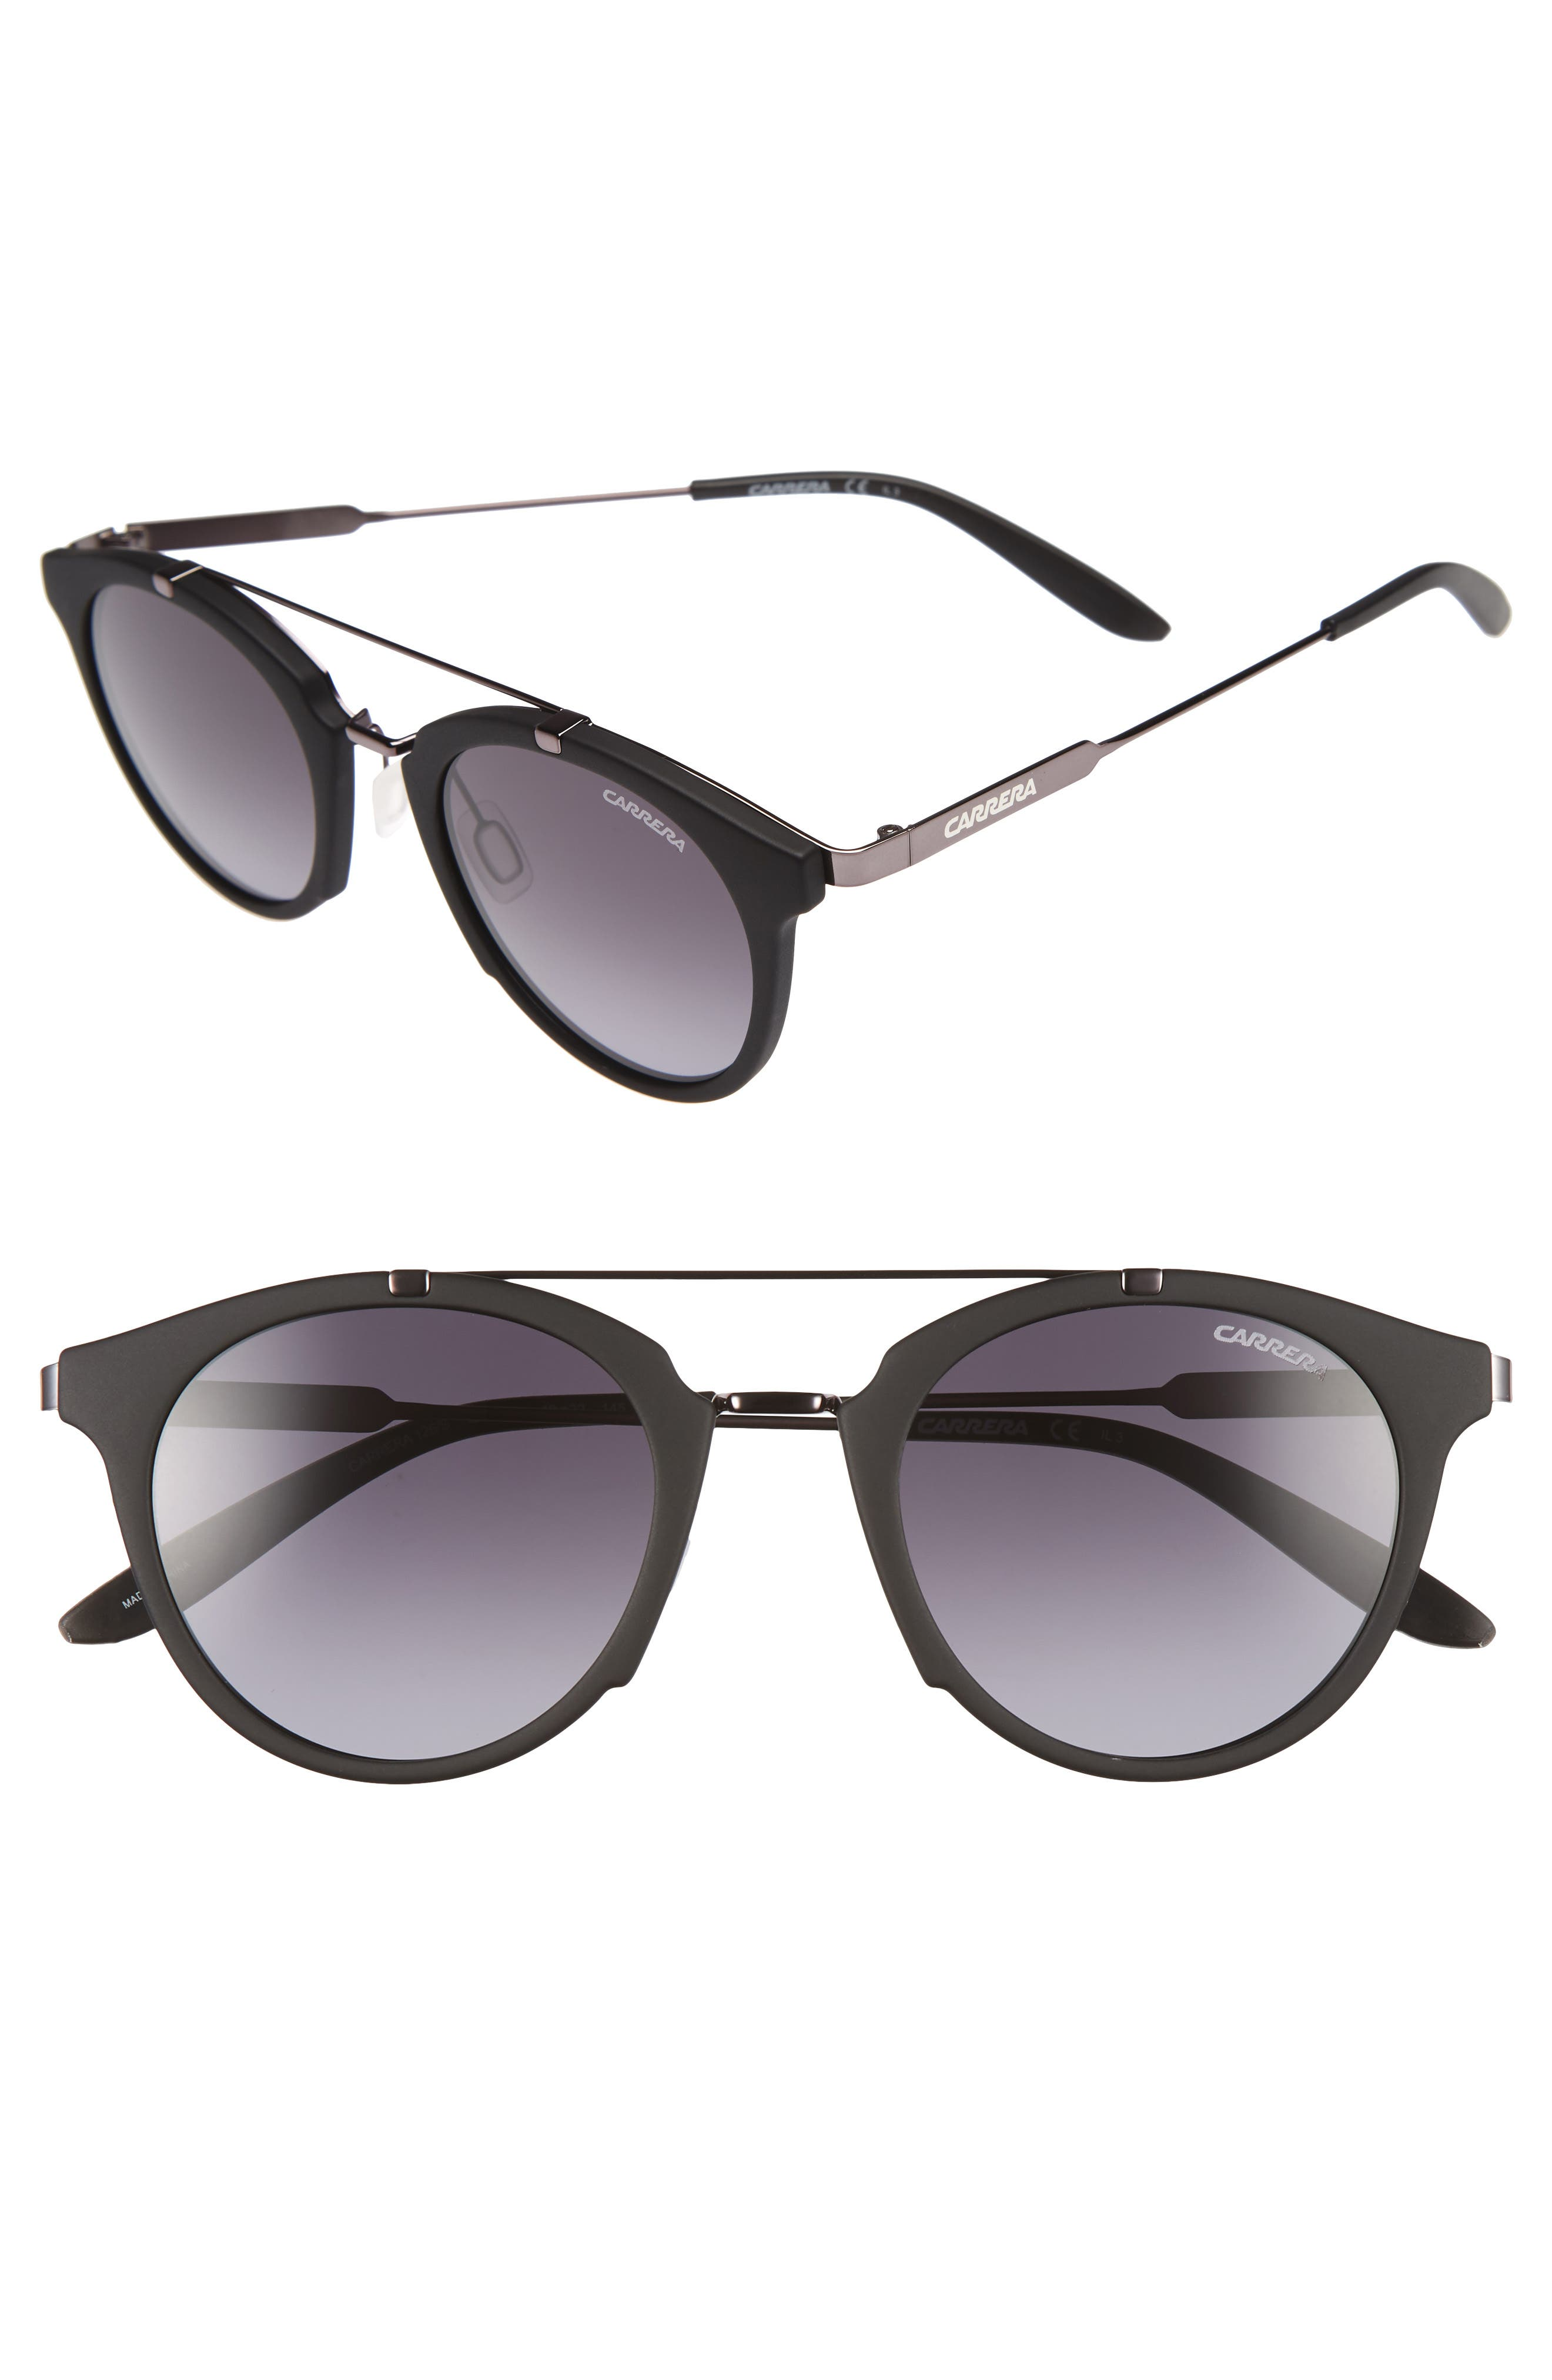 Carrera Eyewear Retro 4m Sunglasses -